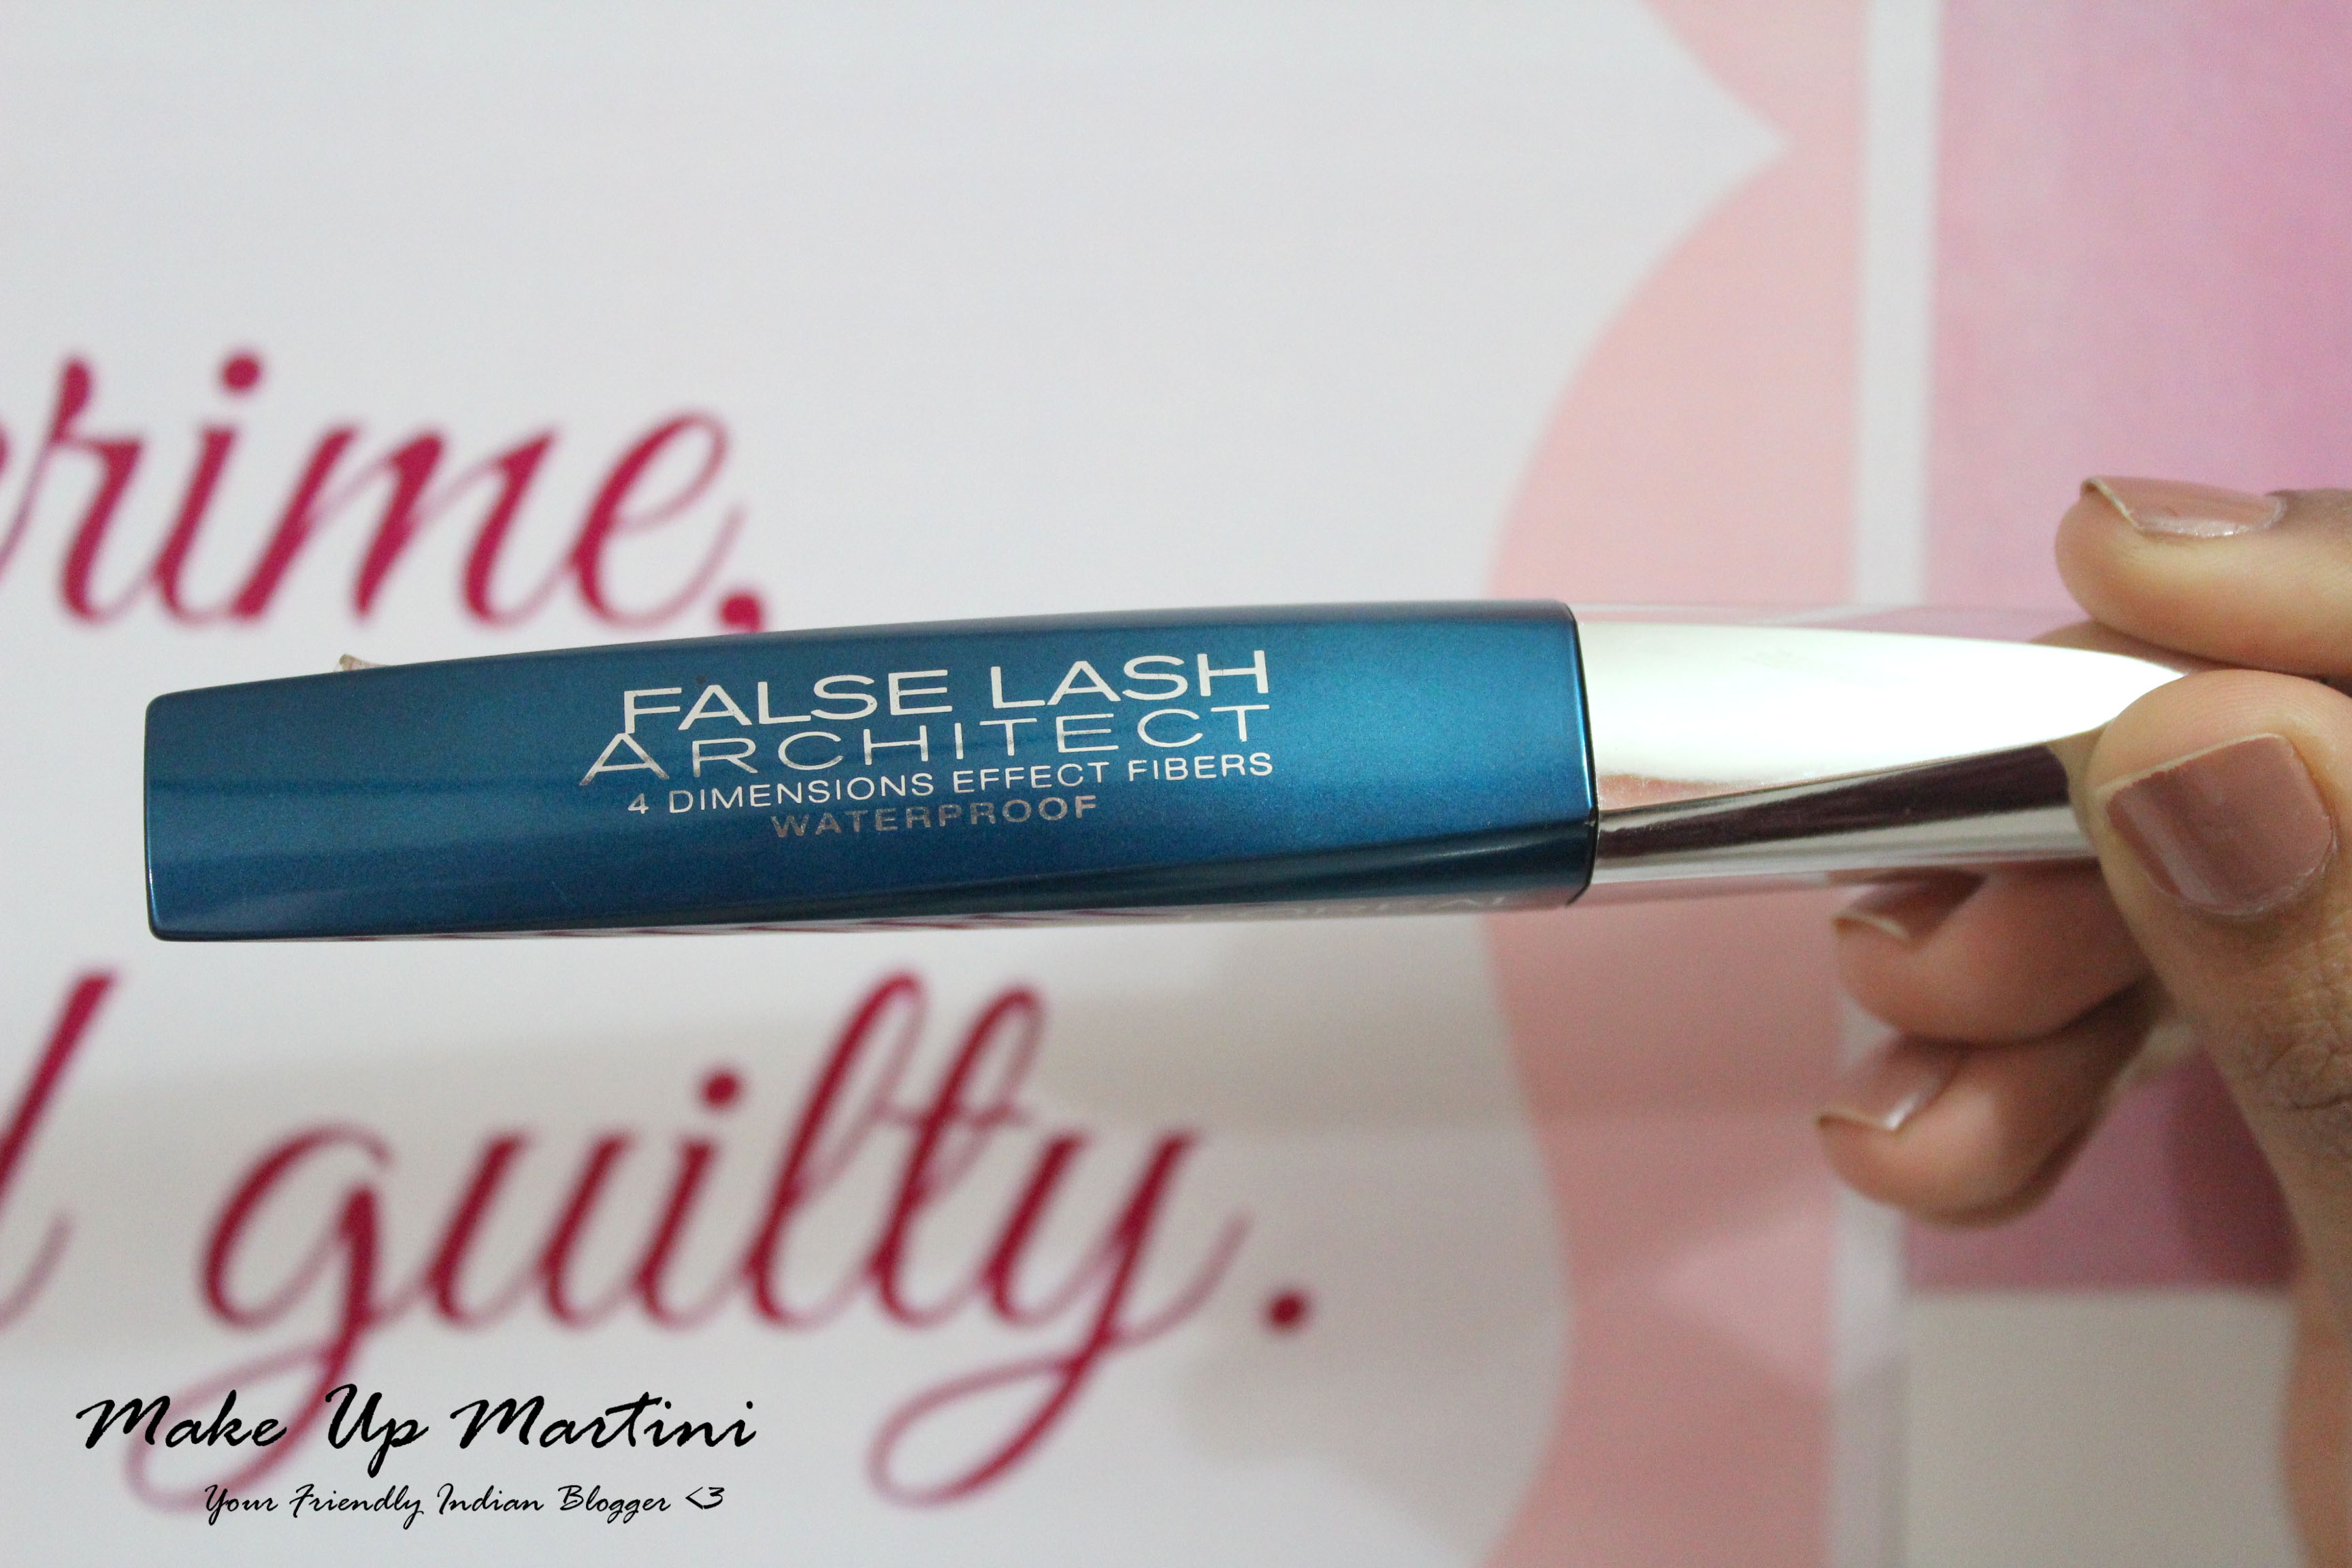 L'Oreal Paris False Lash Architect 4D Mascara